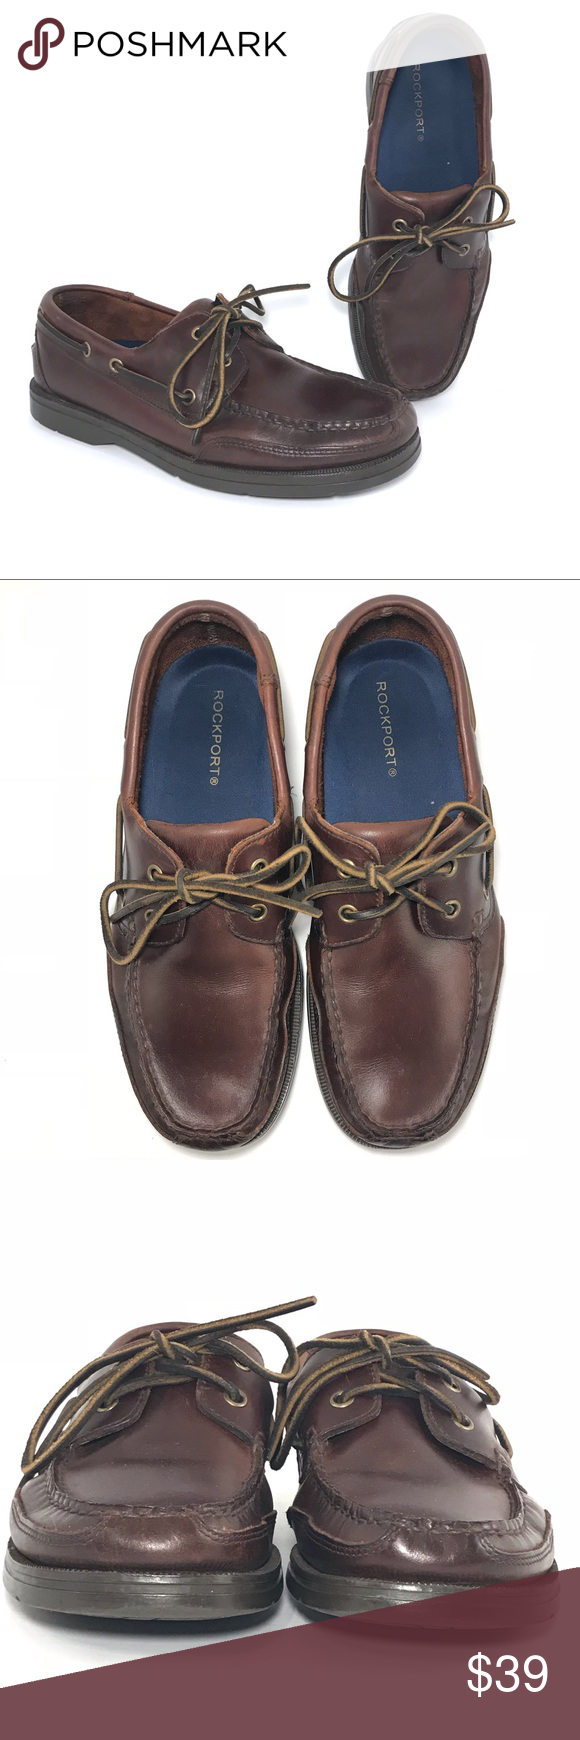 SOLD💥Rockport Boat Shoes Mahogany Leather (con imágenes)